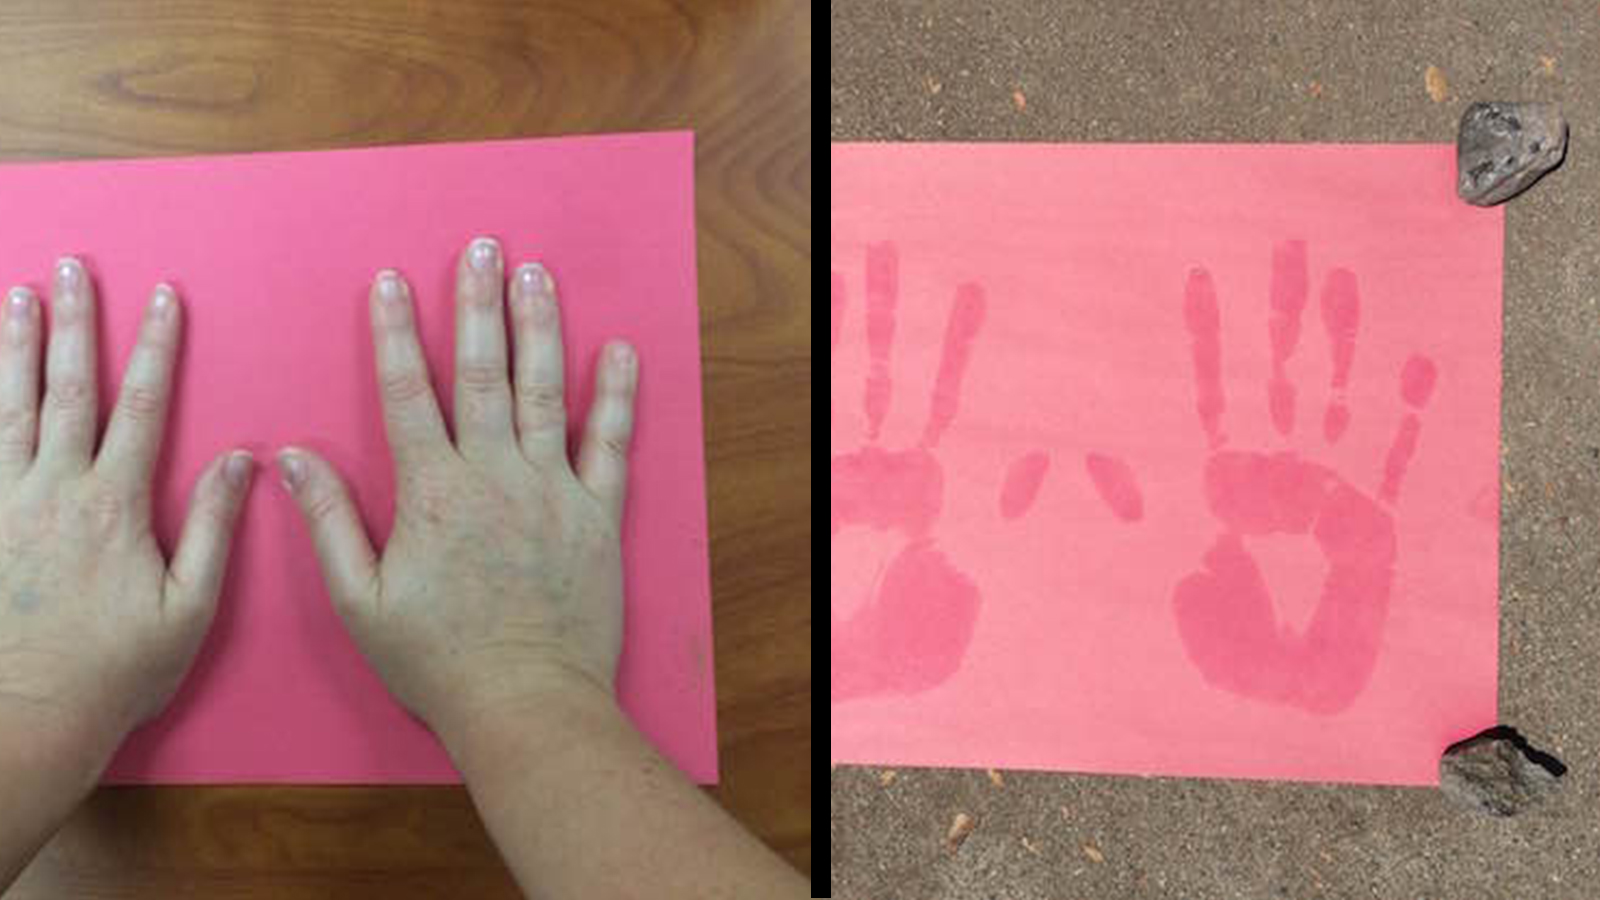 Make Handprint Art Using Ultraviolet Light!